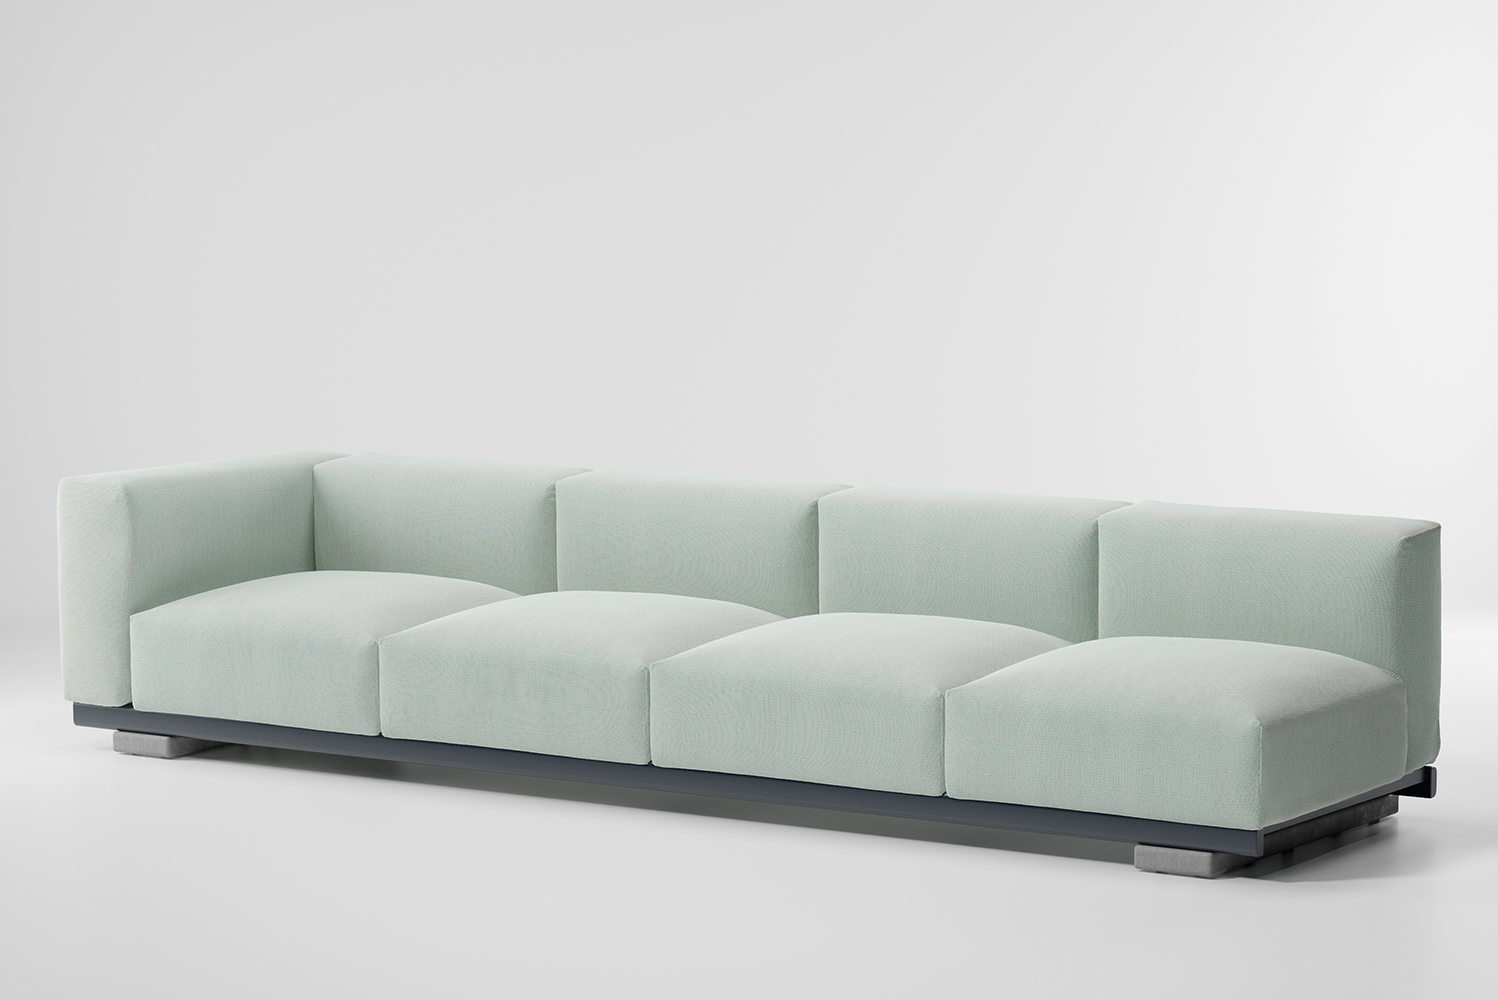 The design is aesthetically minimalistic with intentionally oversized pieces.